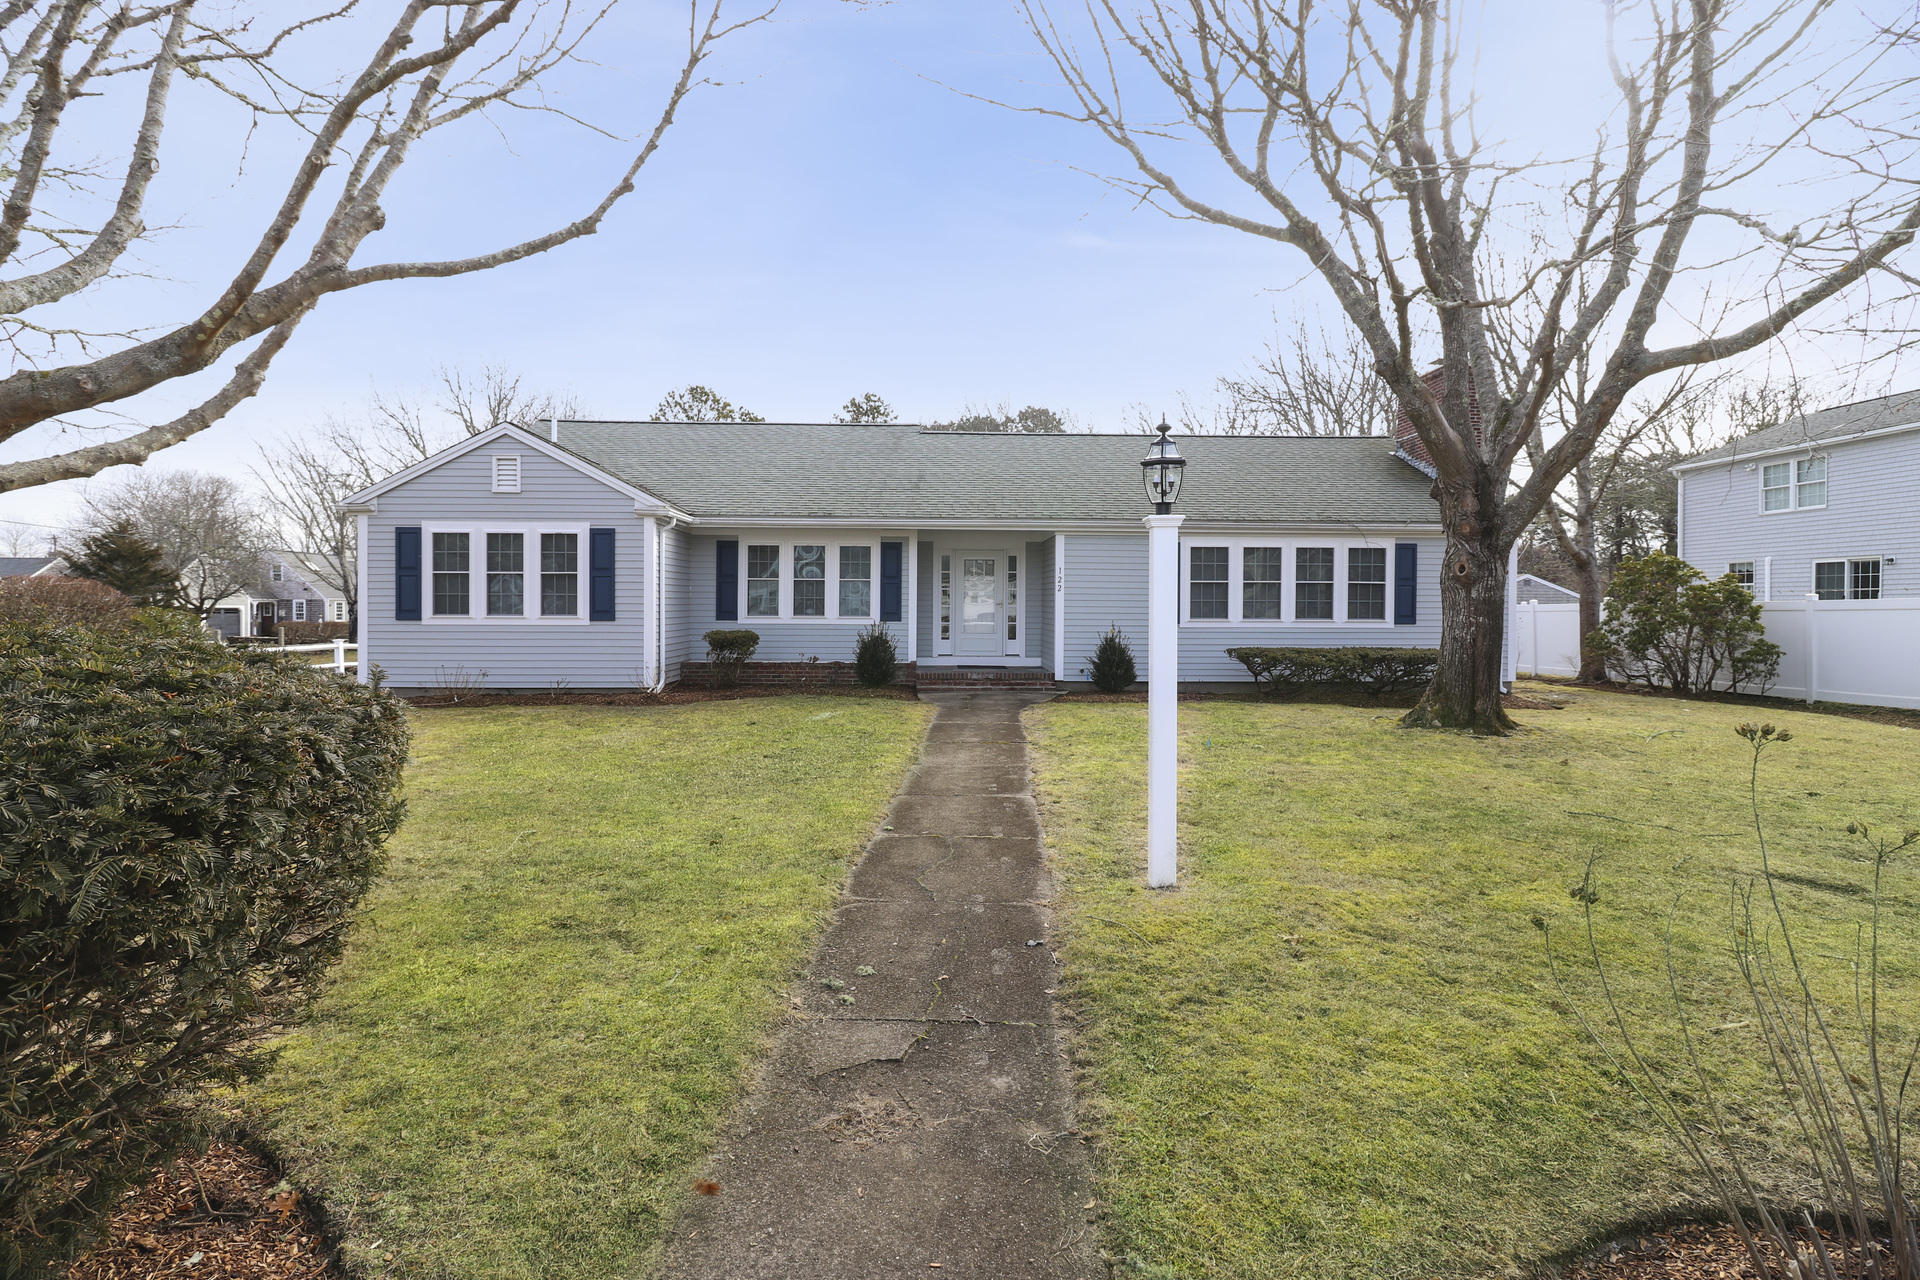 122 Berry Avenue, West Yarmouth MA, 02673 details